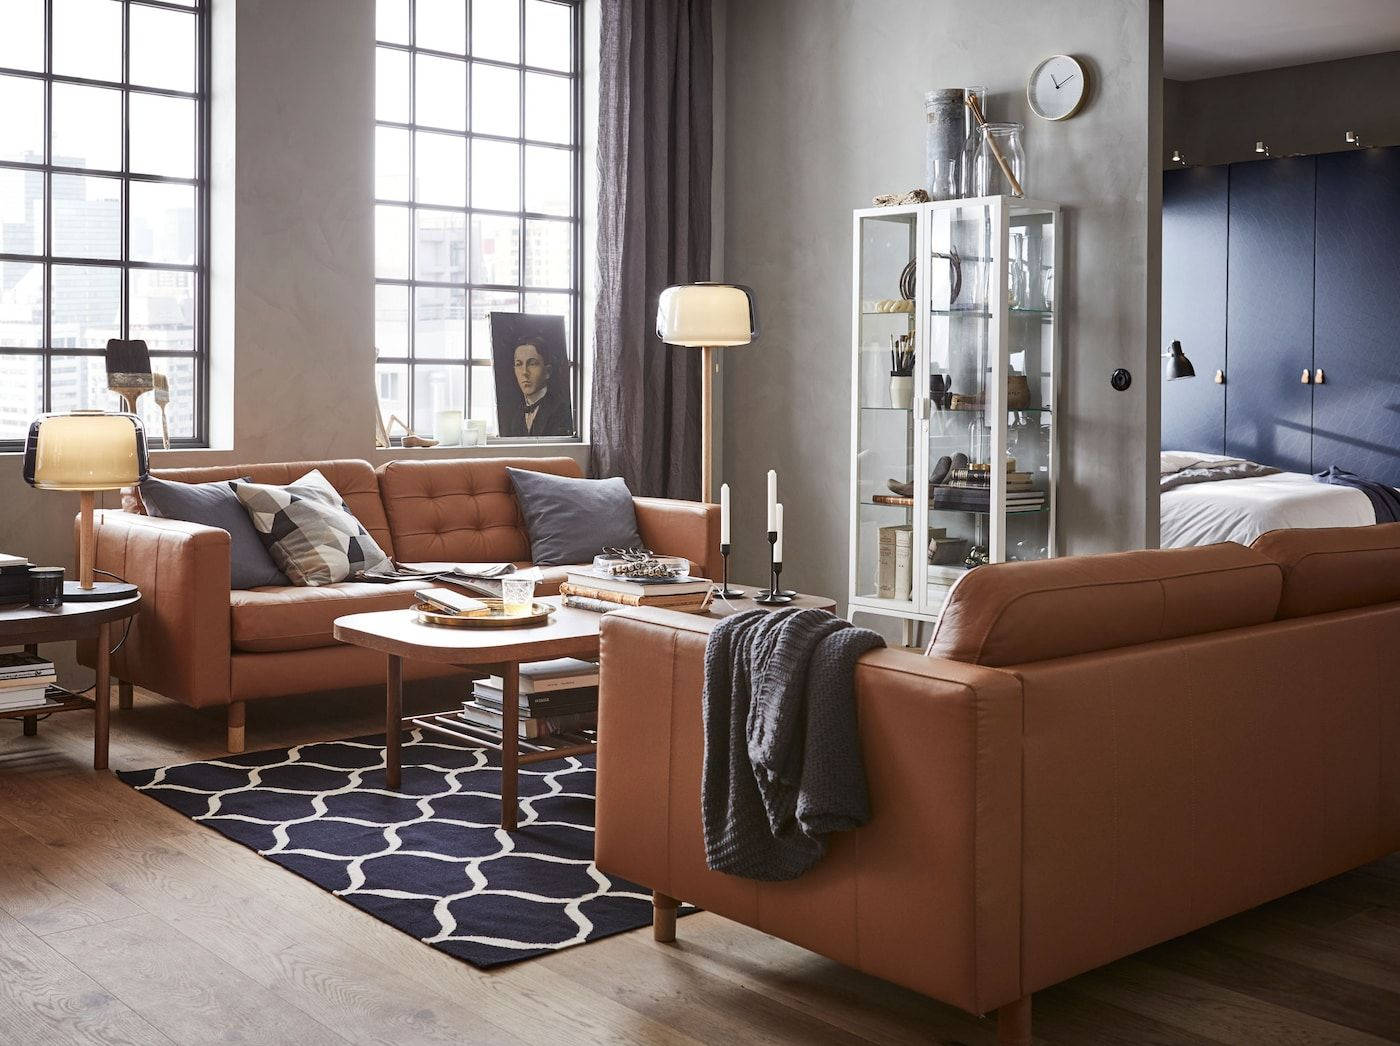 Modern-living-room-2 70+ Hottest Colorful Living Room Decorating Ideas in 2021